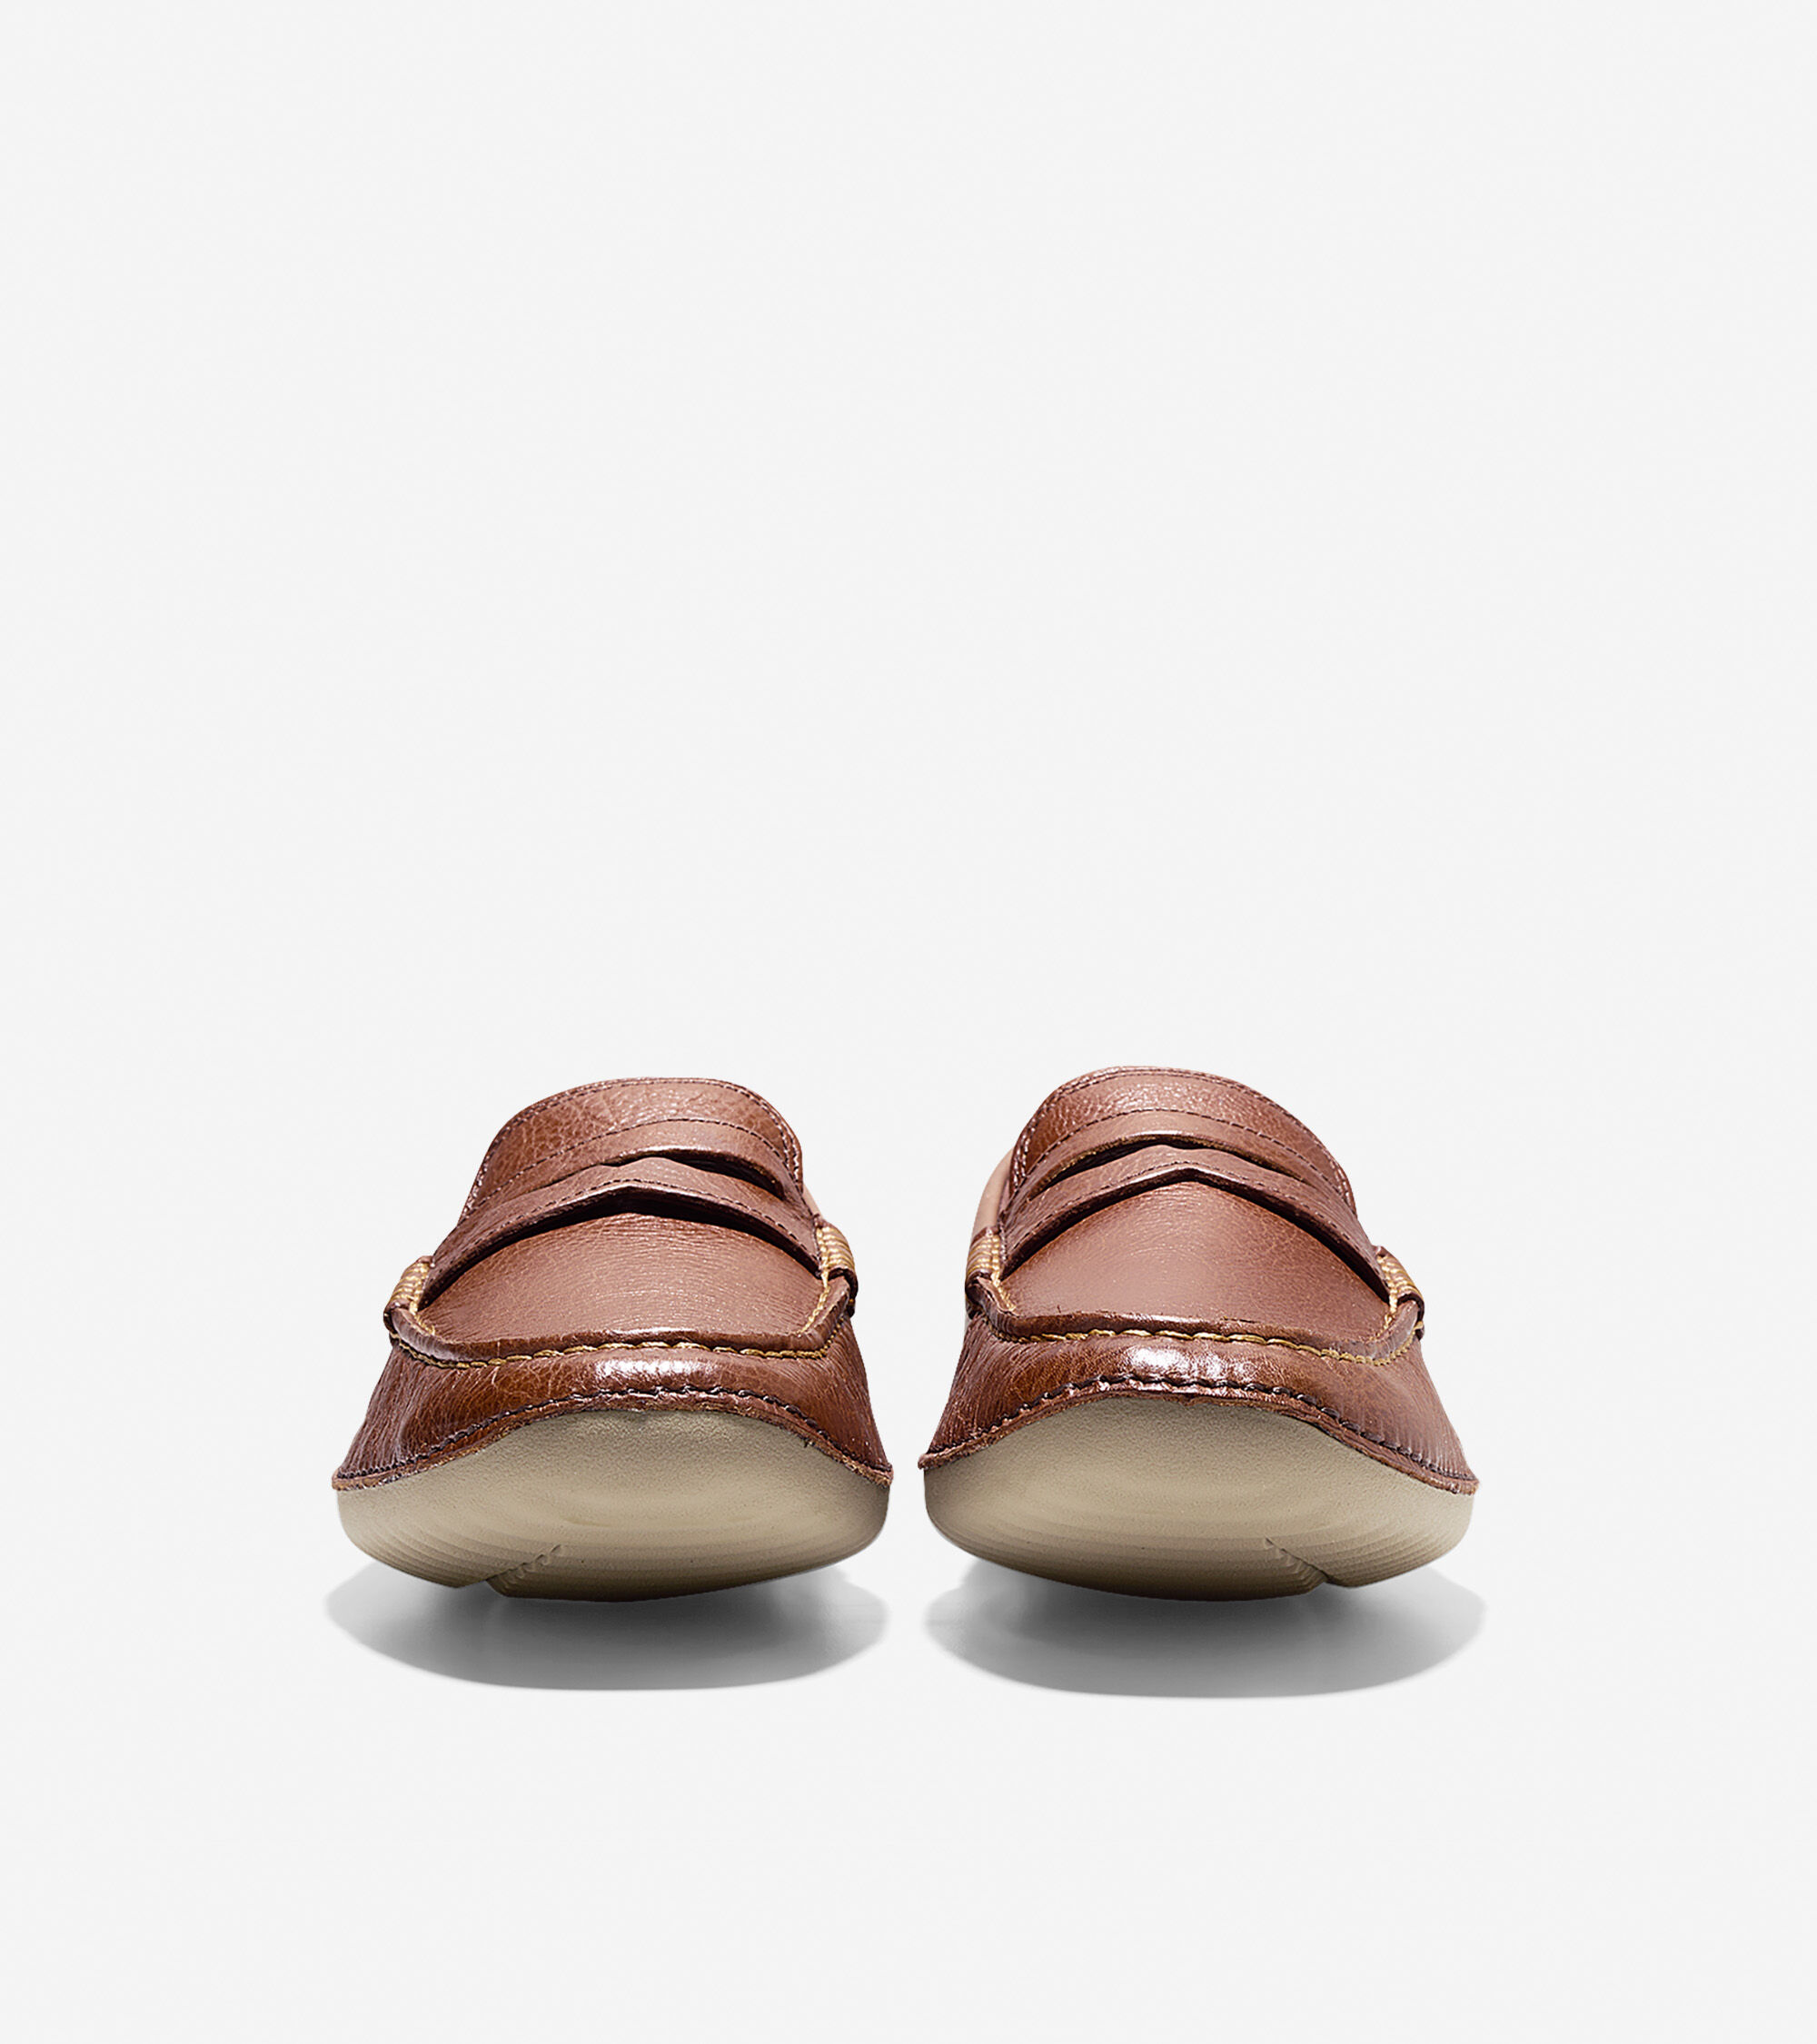 Cole Haan Mens MotoGrand Penny Driving Slip On Shoes